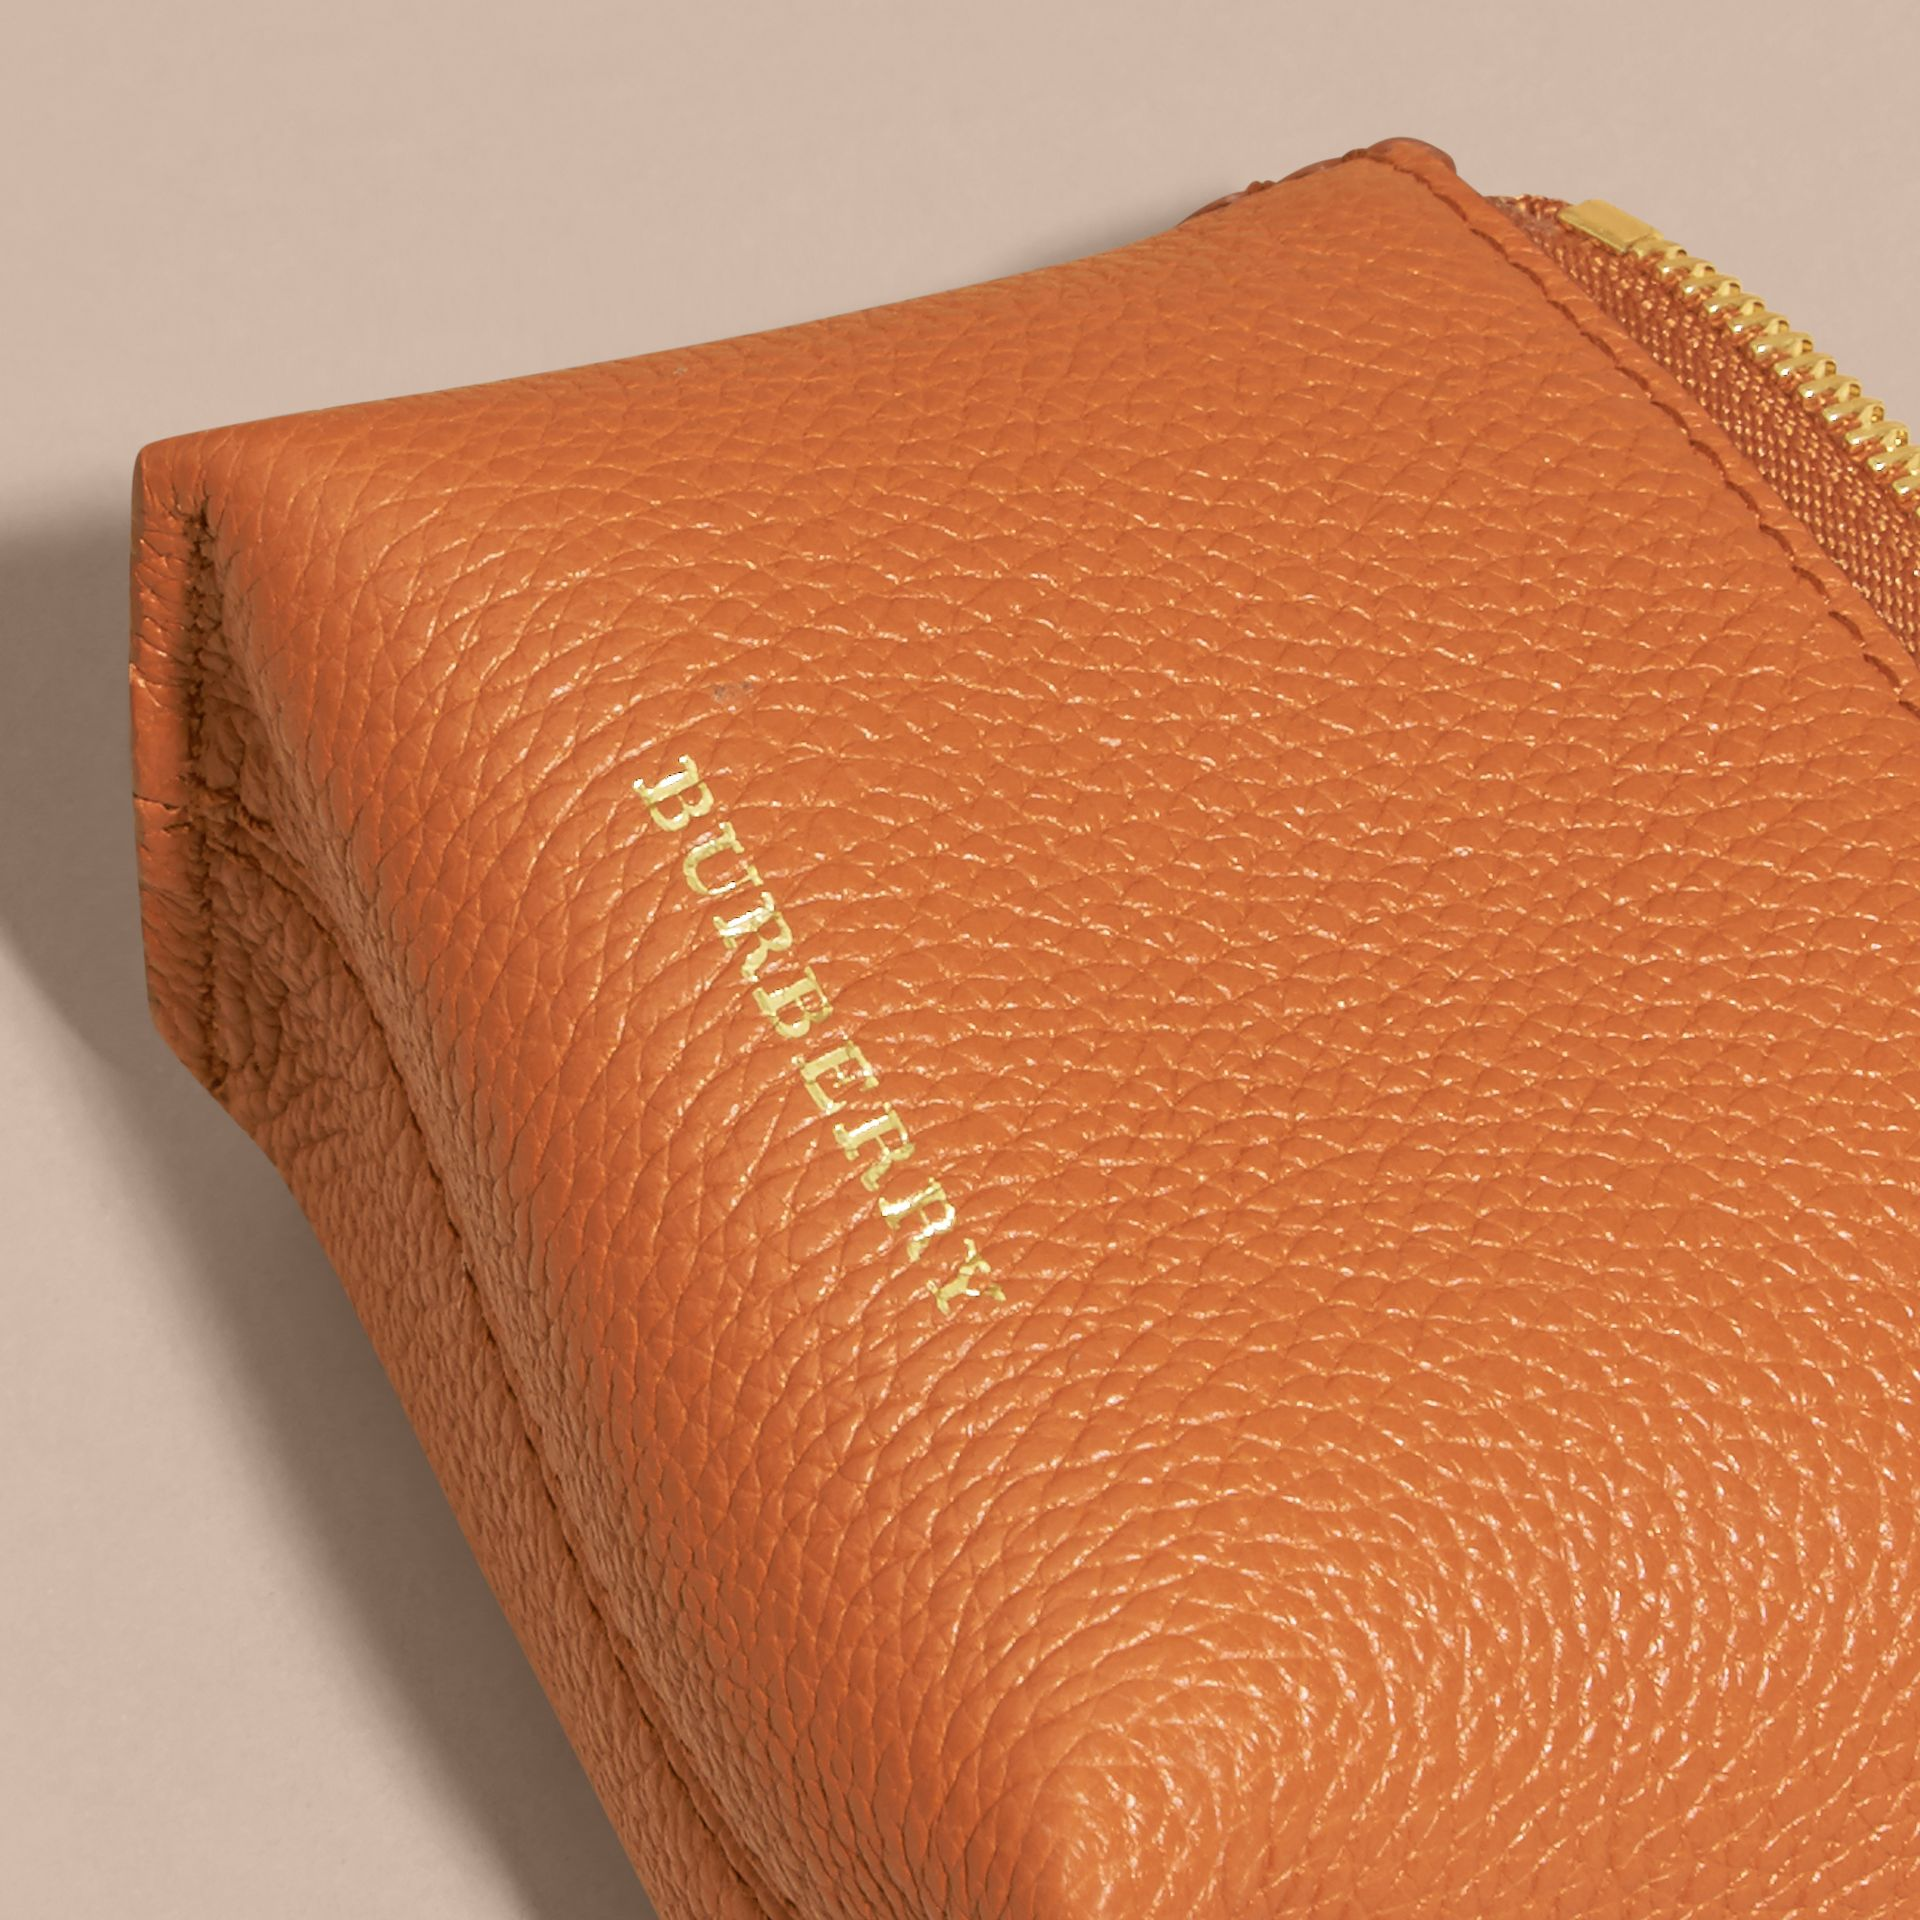 Grainy Leather Lipstick Case in Orange Umber - Women | Burberry - gallery image 2